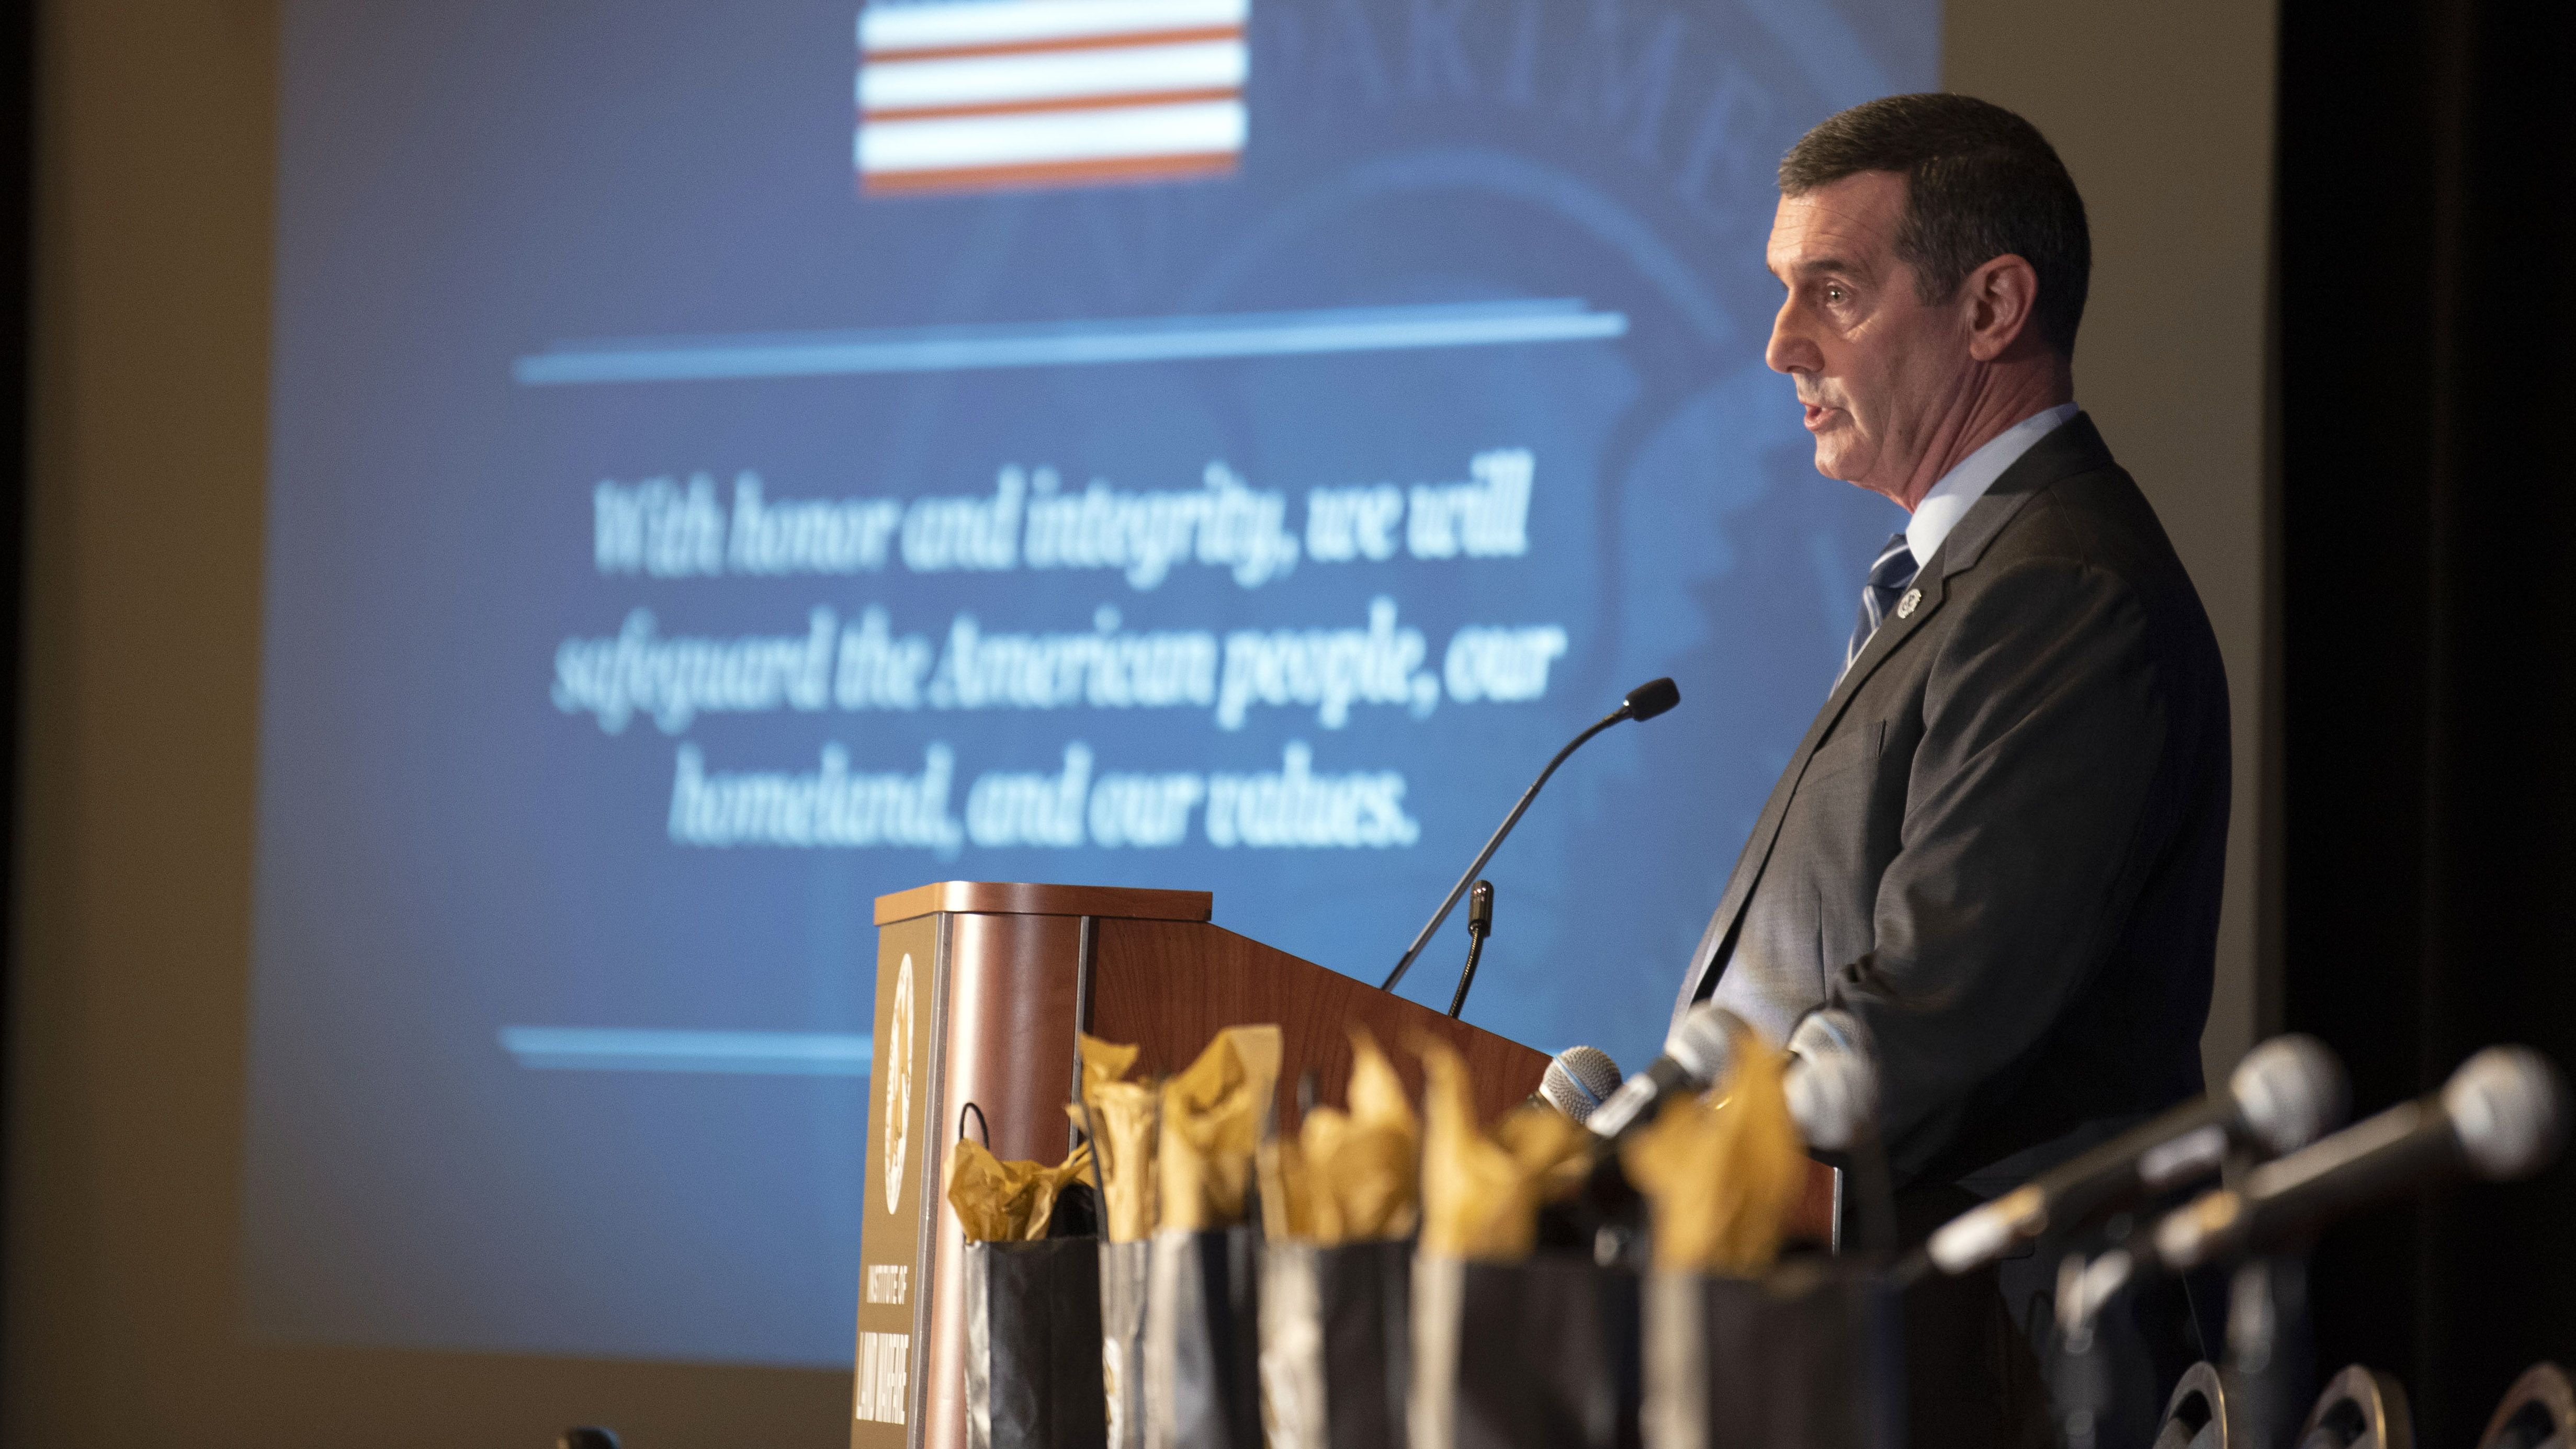 David Pekoske addresses the audience during the ILW Homeland Security Seminar: Multi-Domain Homeland Defense at the 2019 AUSA Annual Meeting and Exposition at the Washington Convention Center on Oct. 15, 2019.